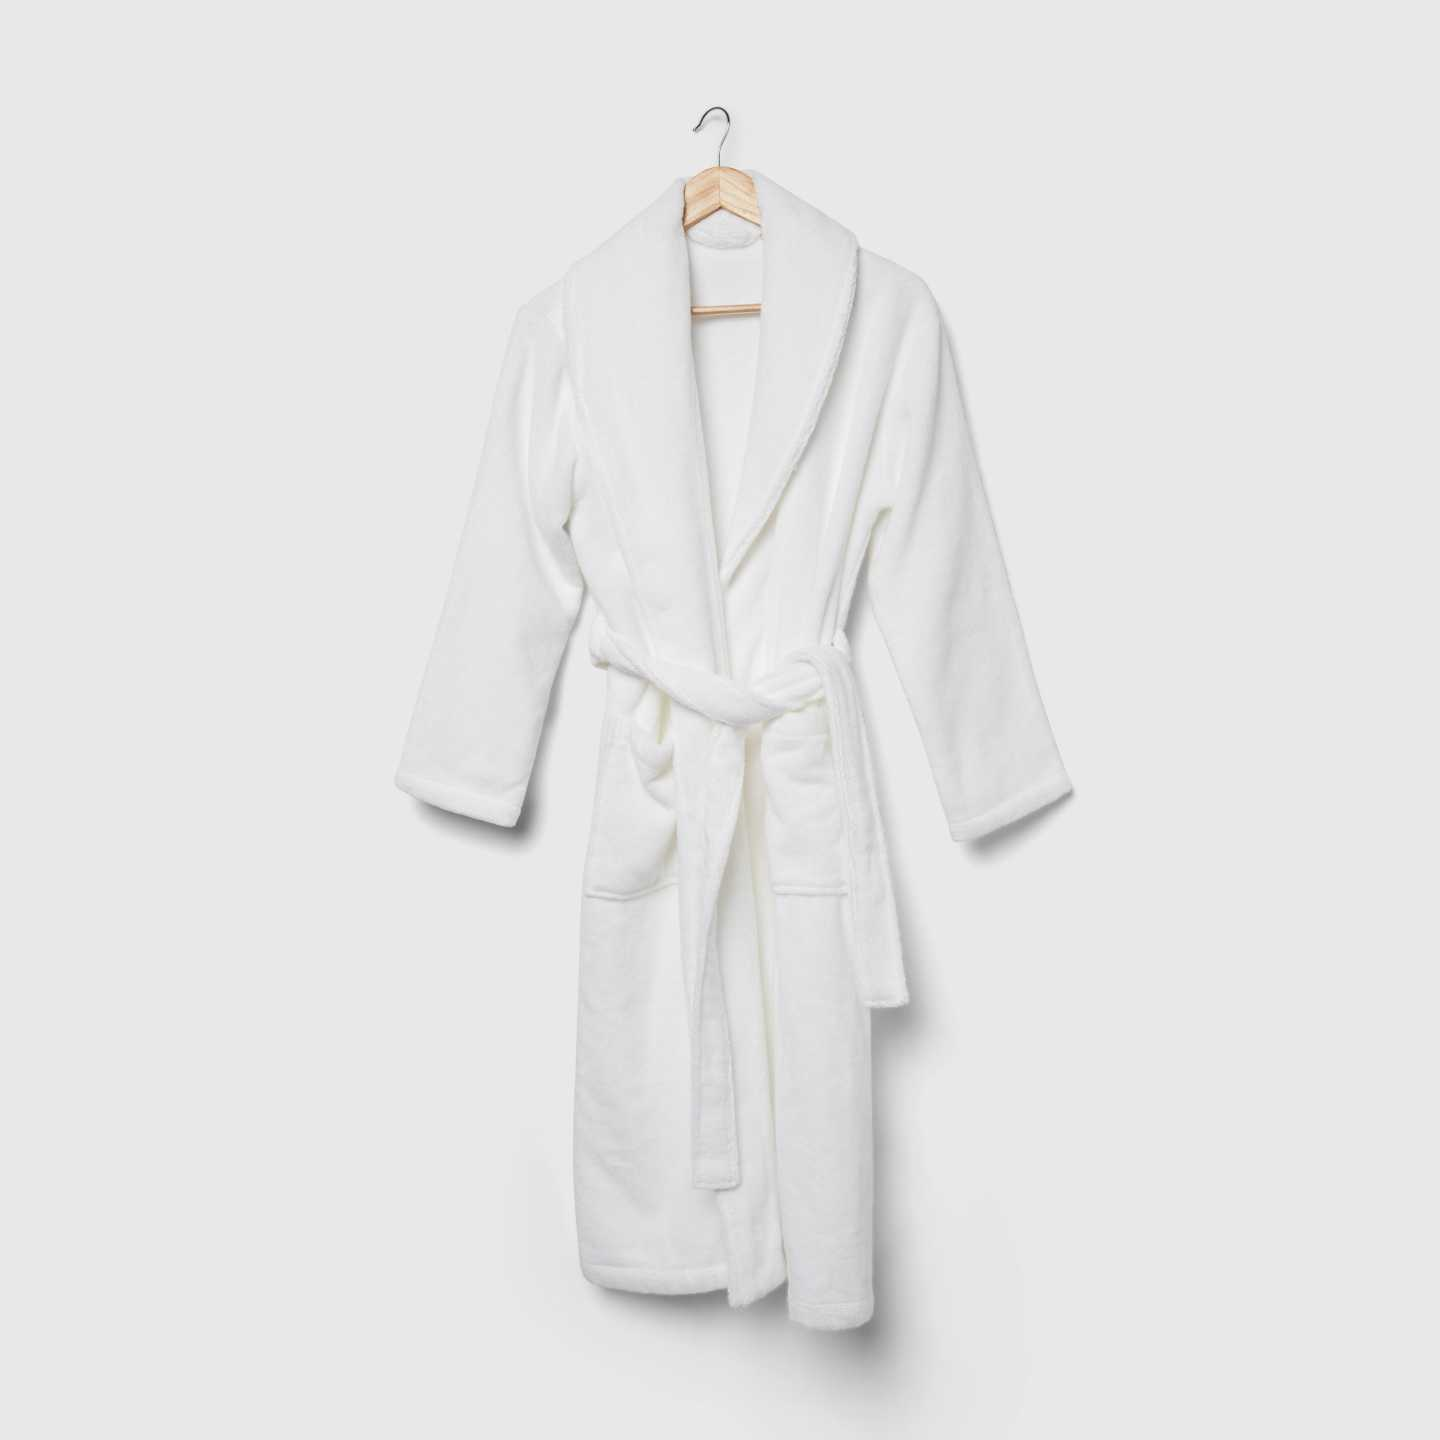 Organic Luxe Turkish Cotton Bath Robe - undefined - 0